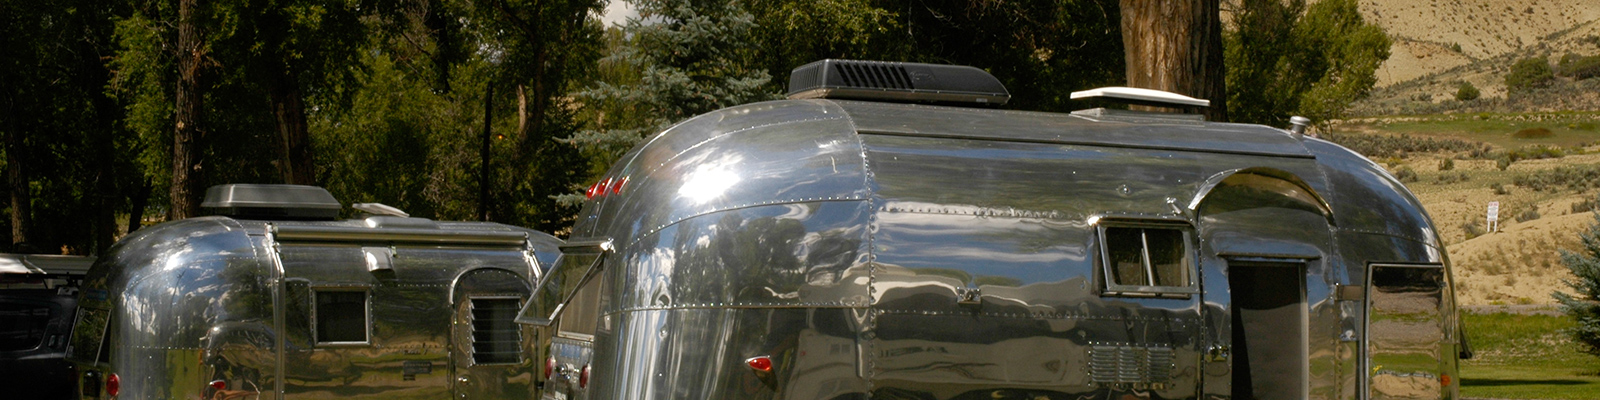 featured-airstreamlife-vintage